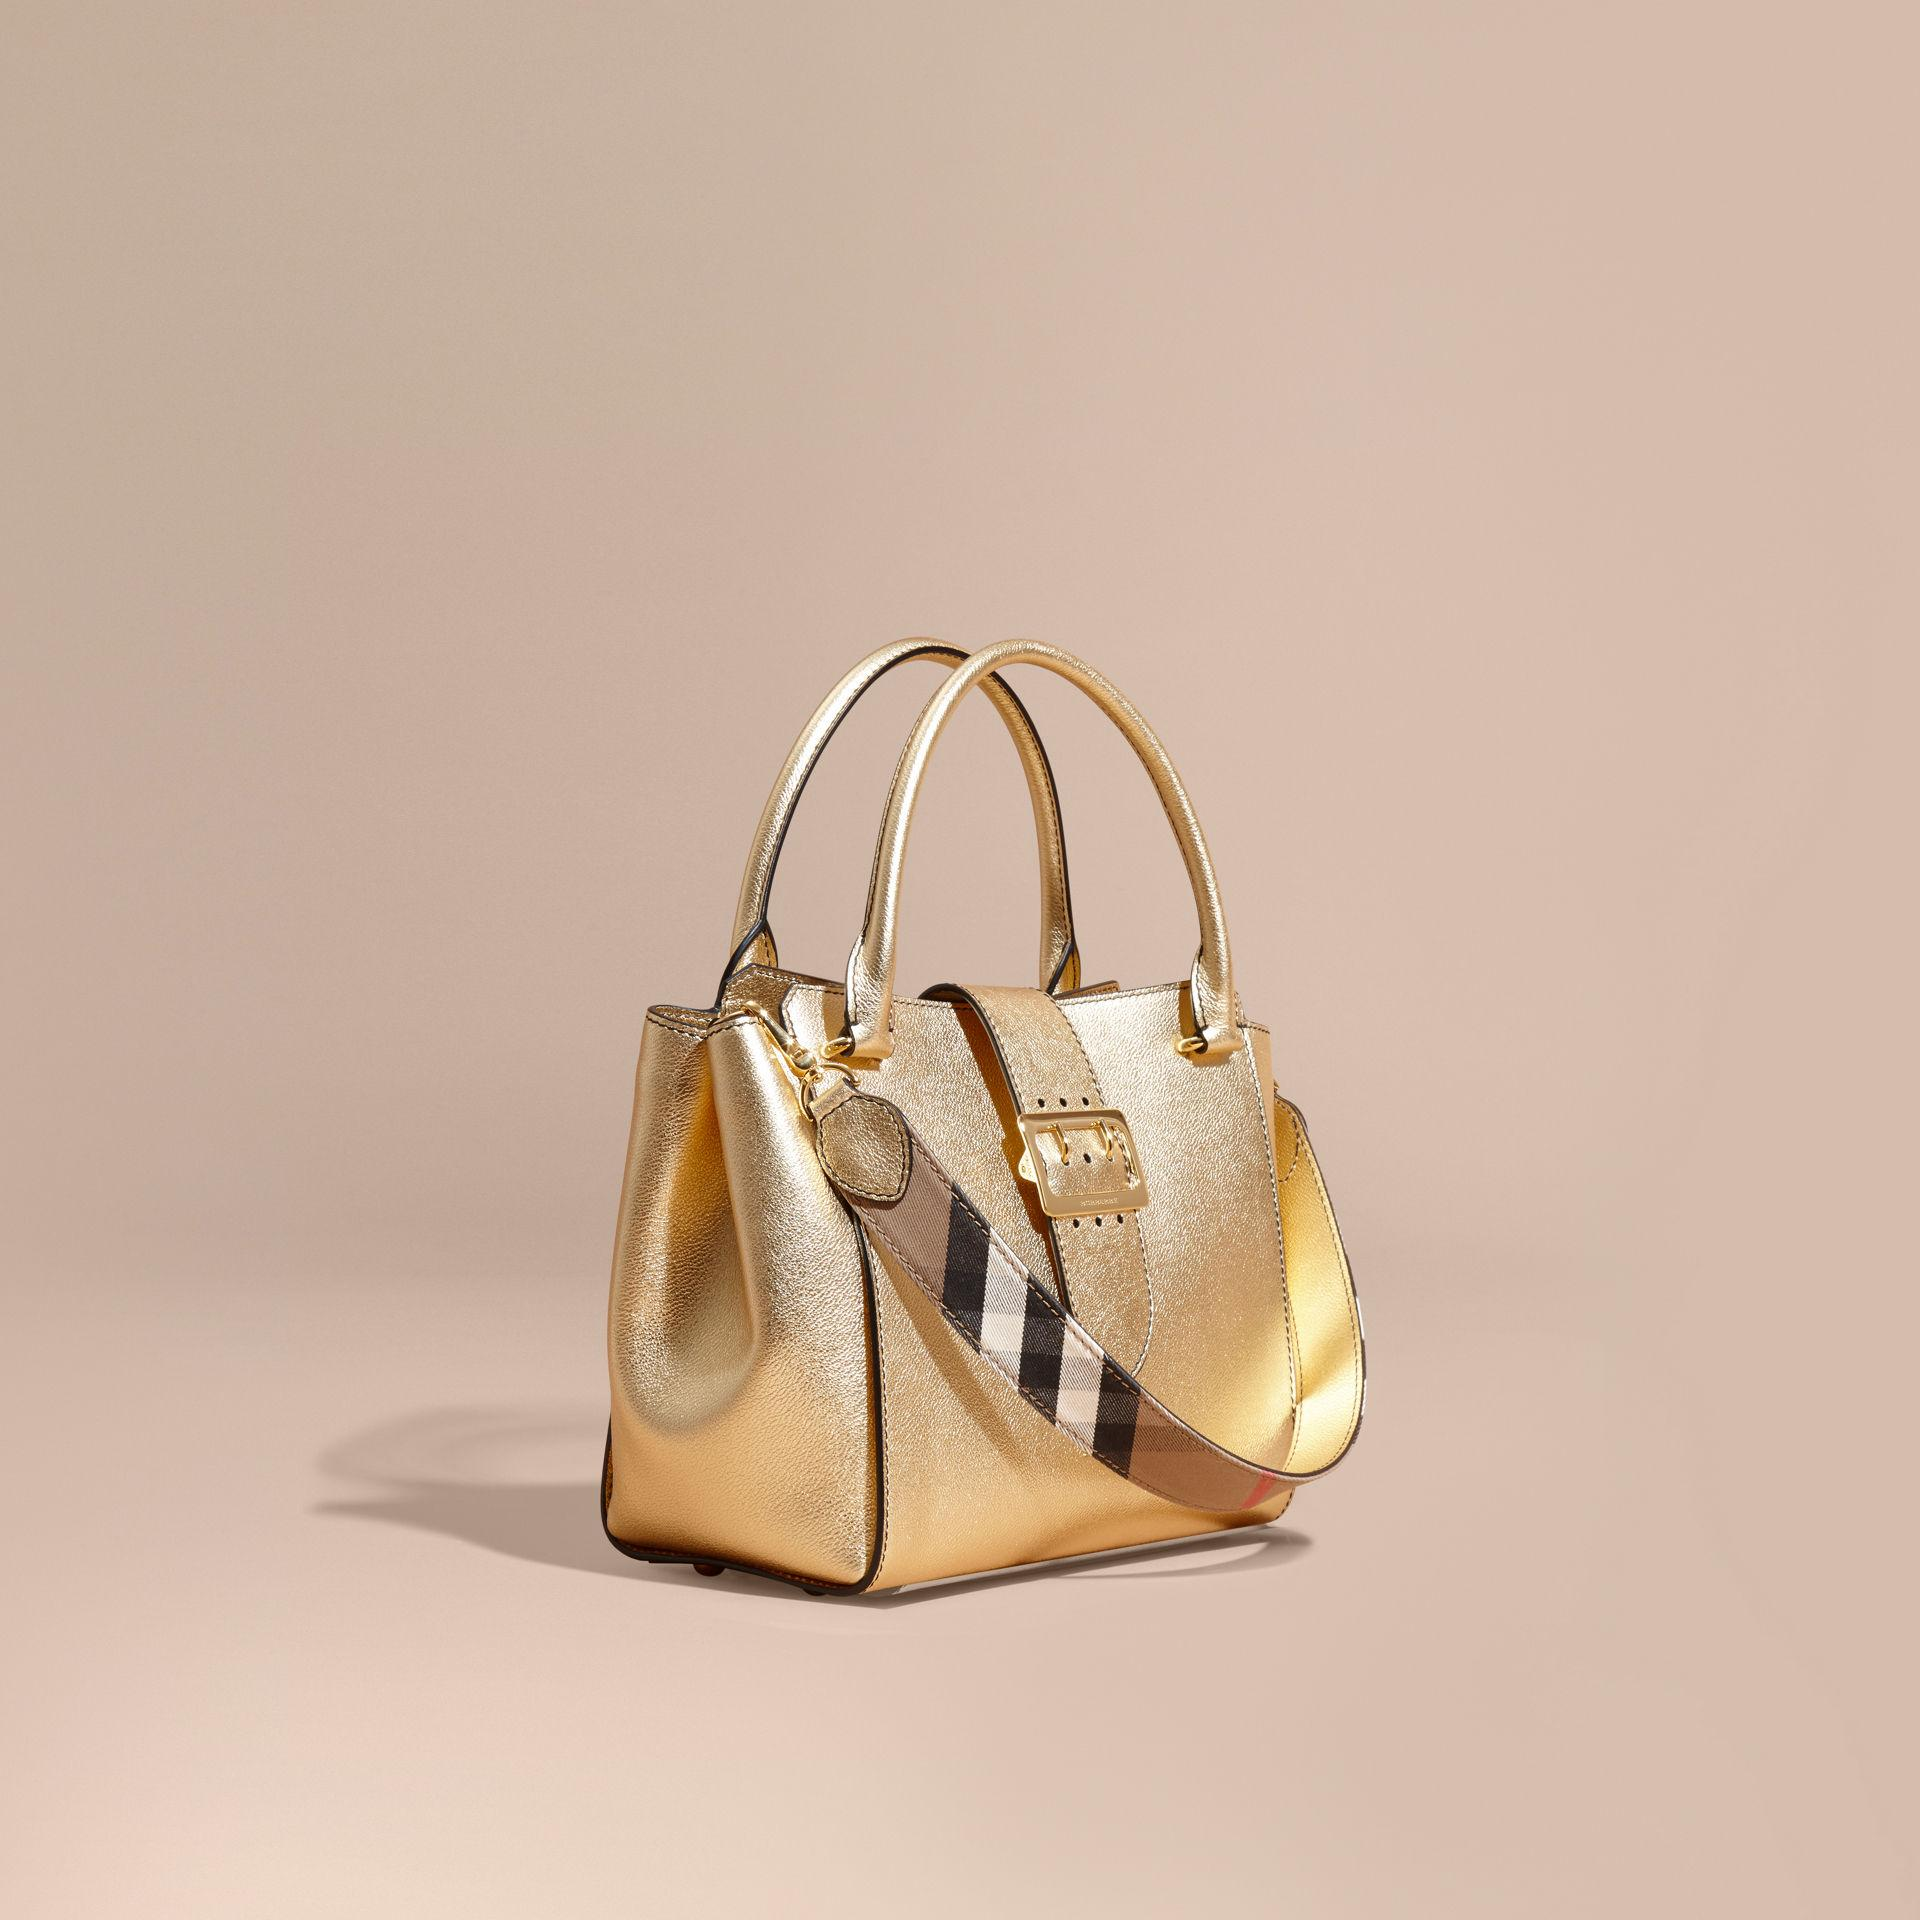 Burberry Bags Gold